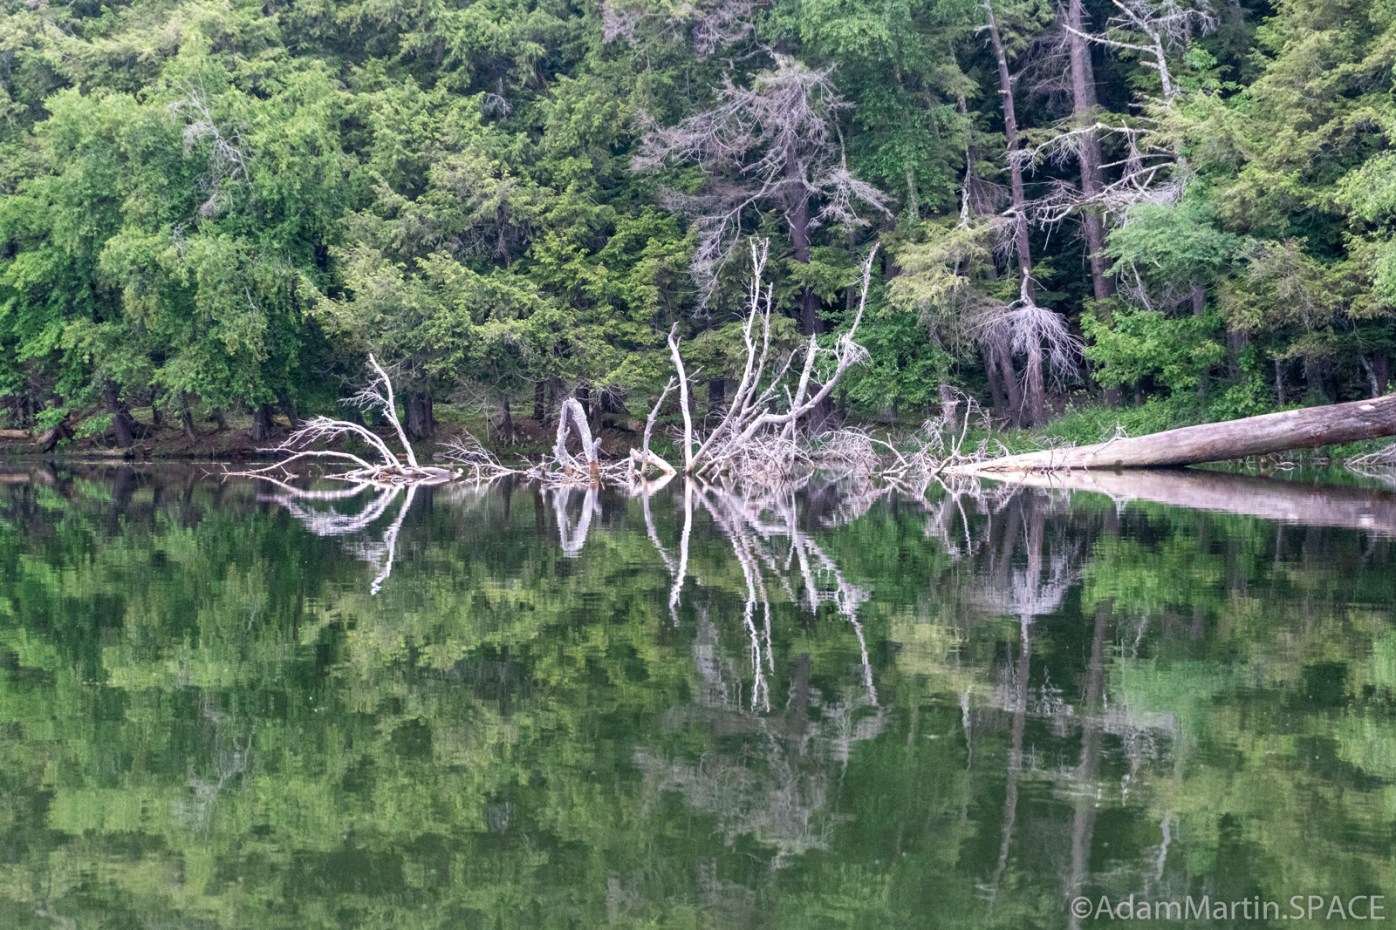 Lost Lake Recreation Area - Downed tree reflection